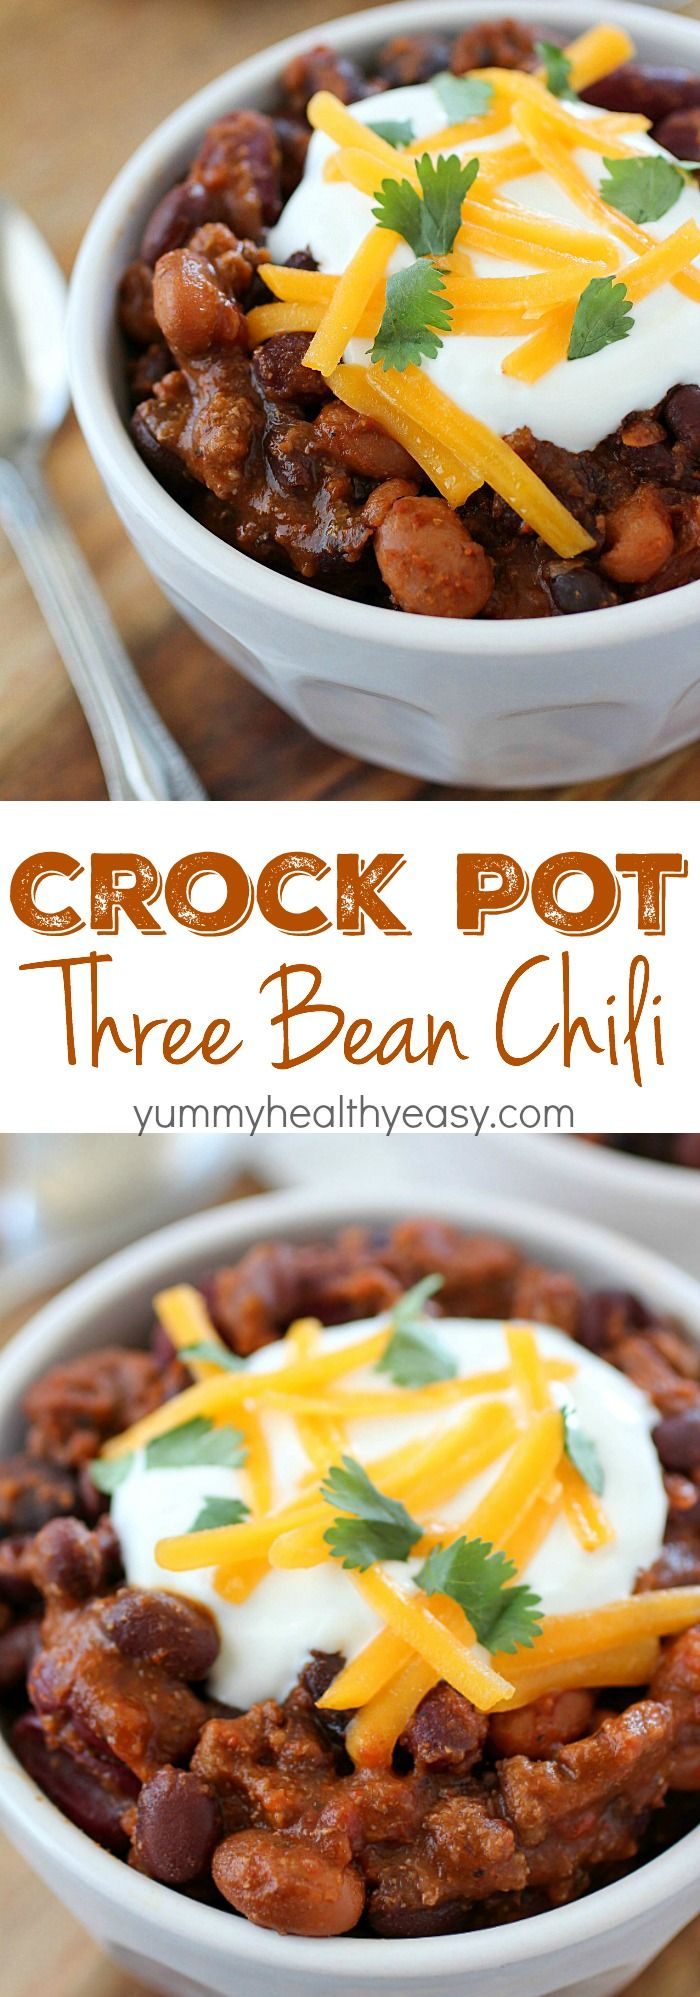 Crock Pot Three Bean Chili that is packed with flavor! You will love this easy chili cooked right in the slow cooker!